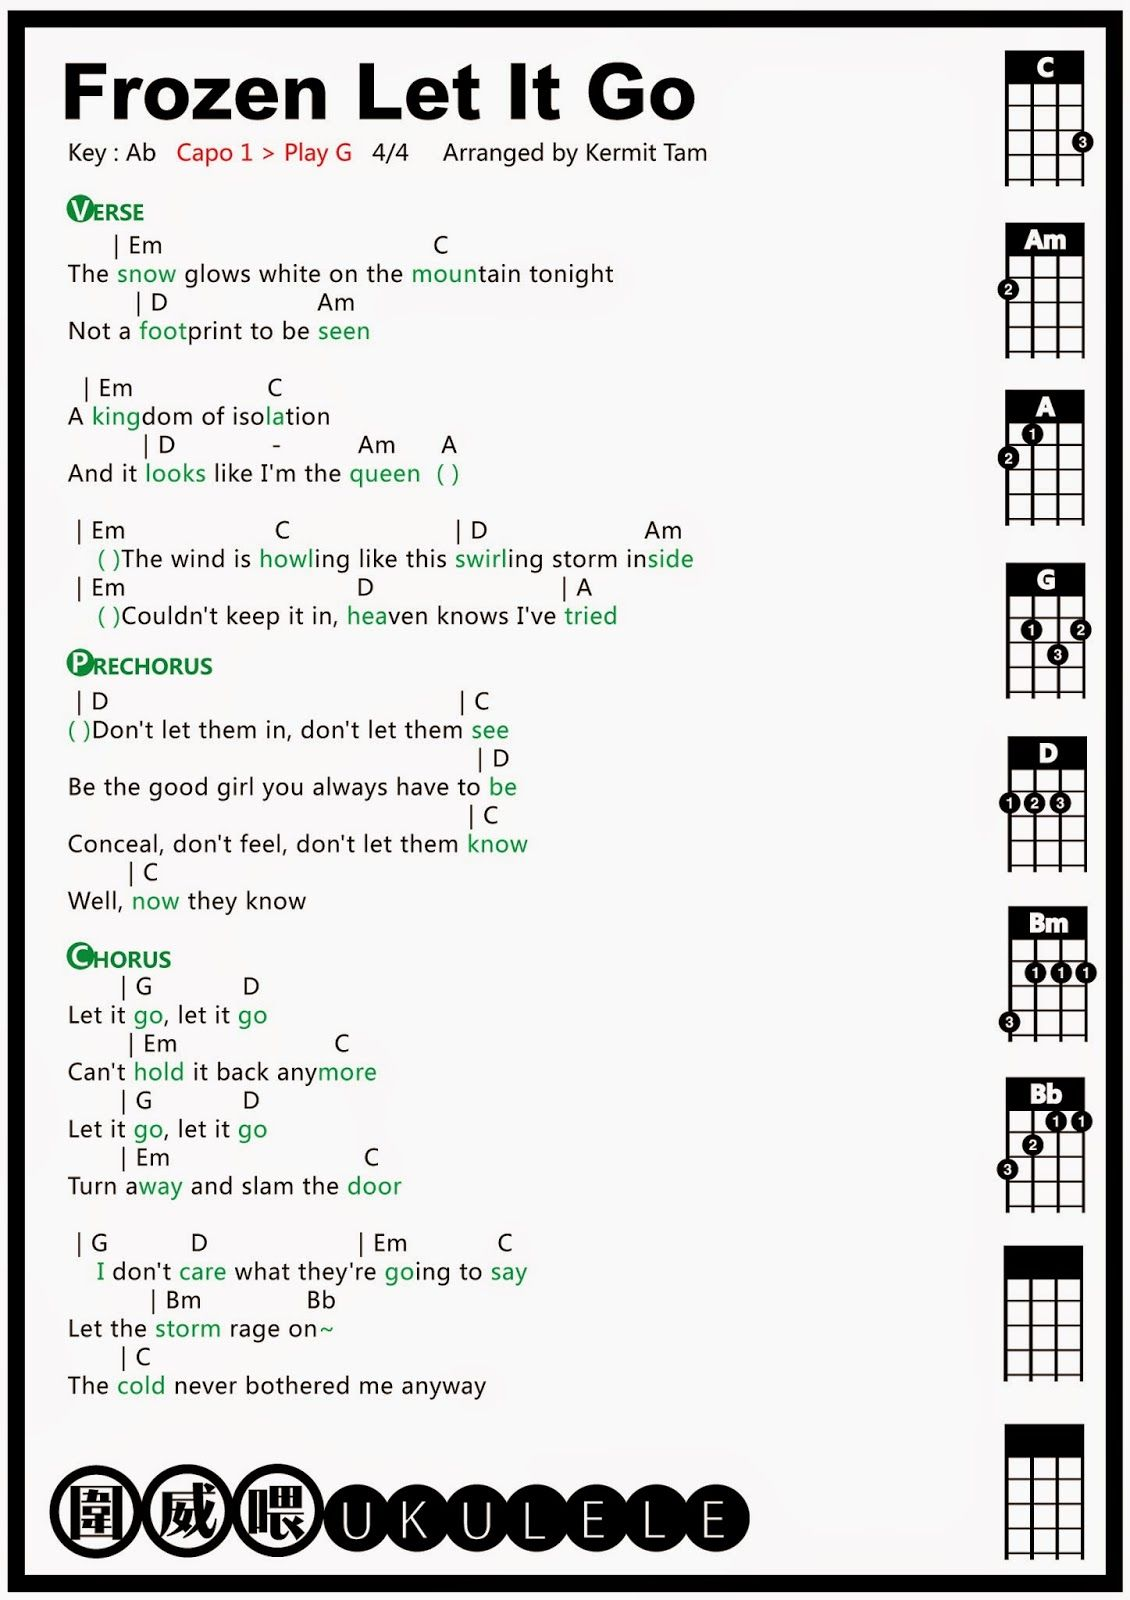 Ukulele chords for songs